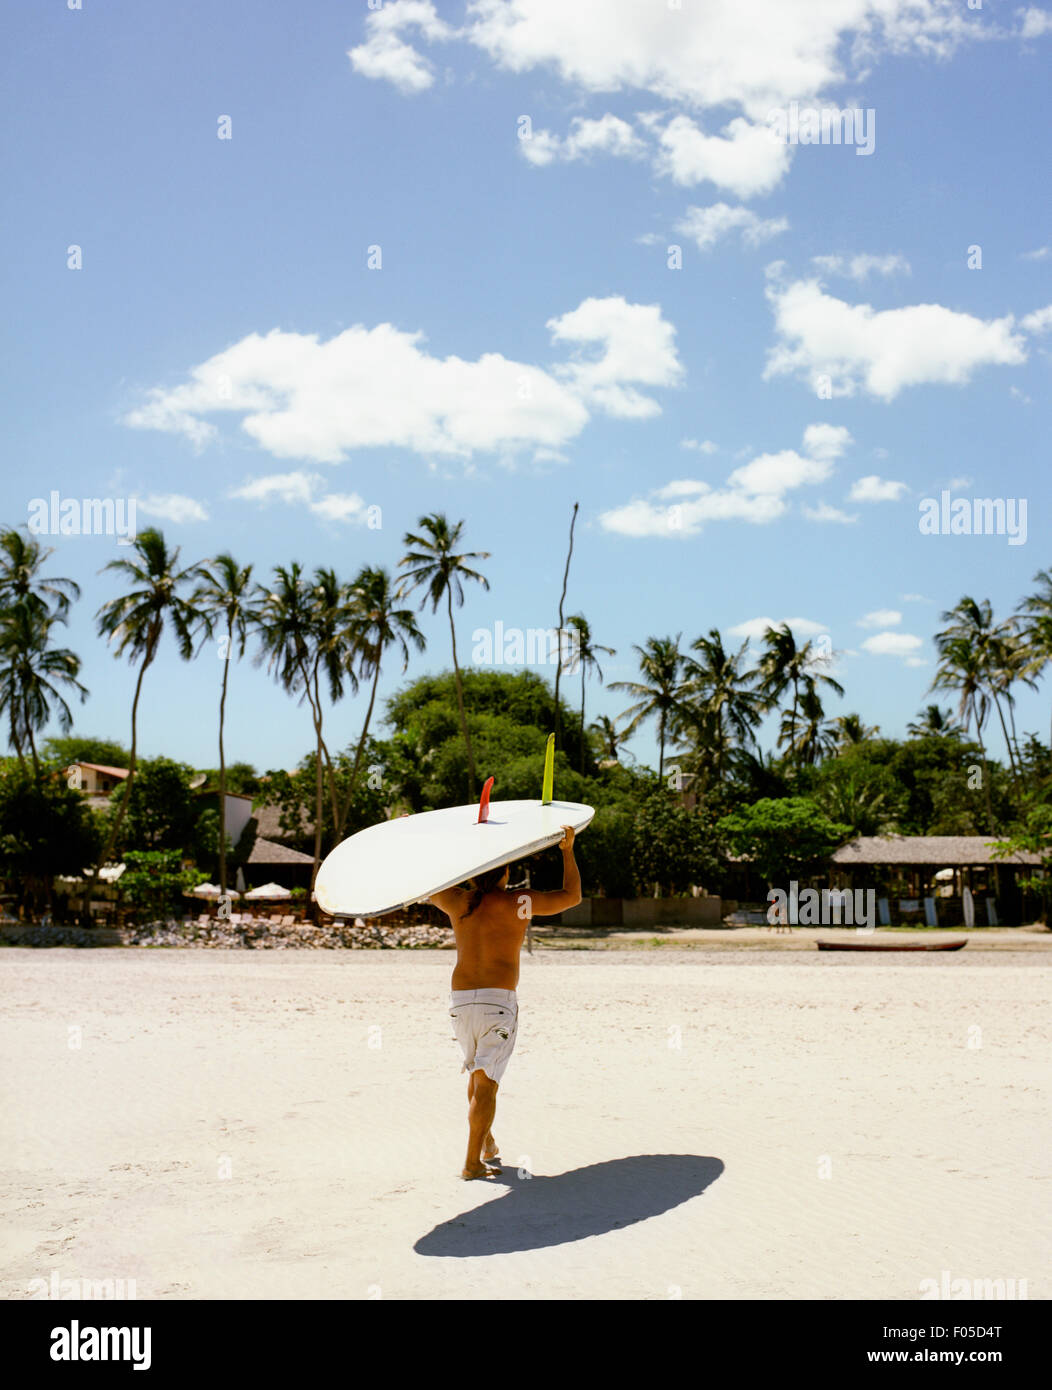 A man brings his wind surfing board in from the ocean. Jericoacoara, Brazil. - Stock Image